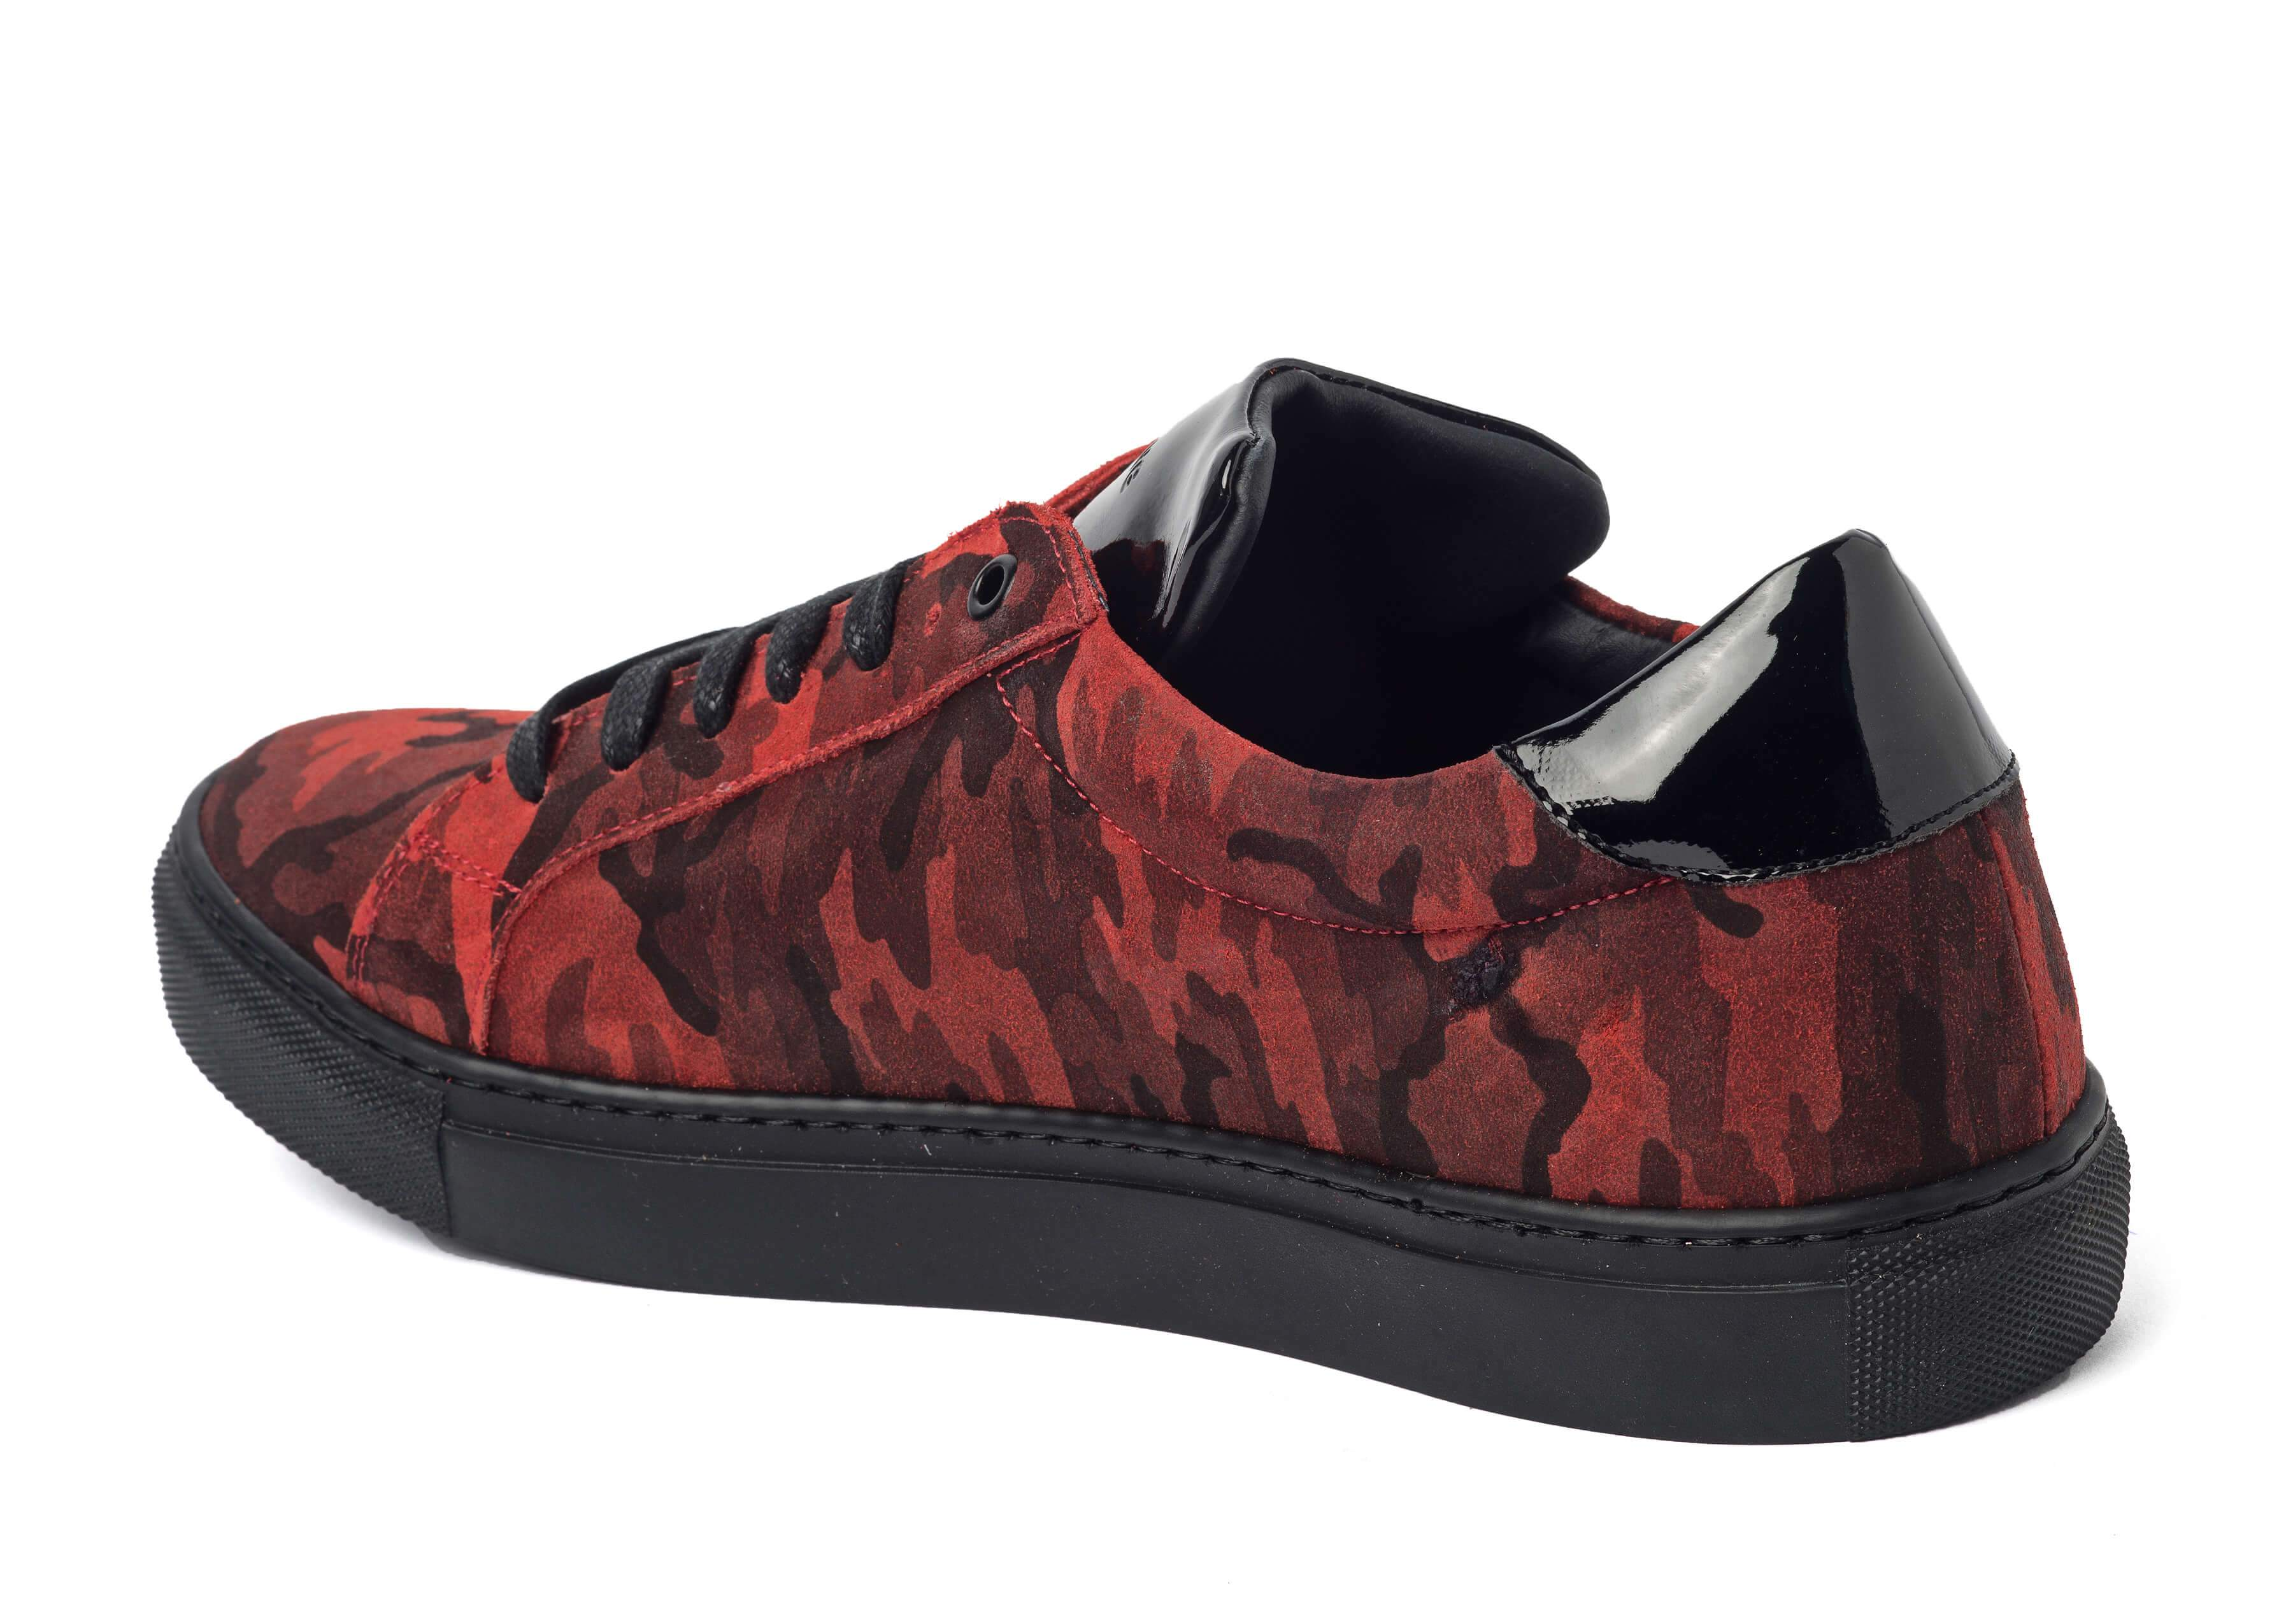 Red Camouflage Sneakers for Men 2828-RC - left - Jared Lang